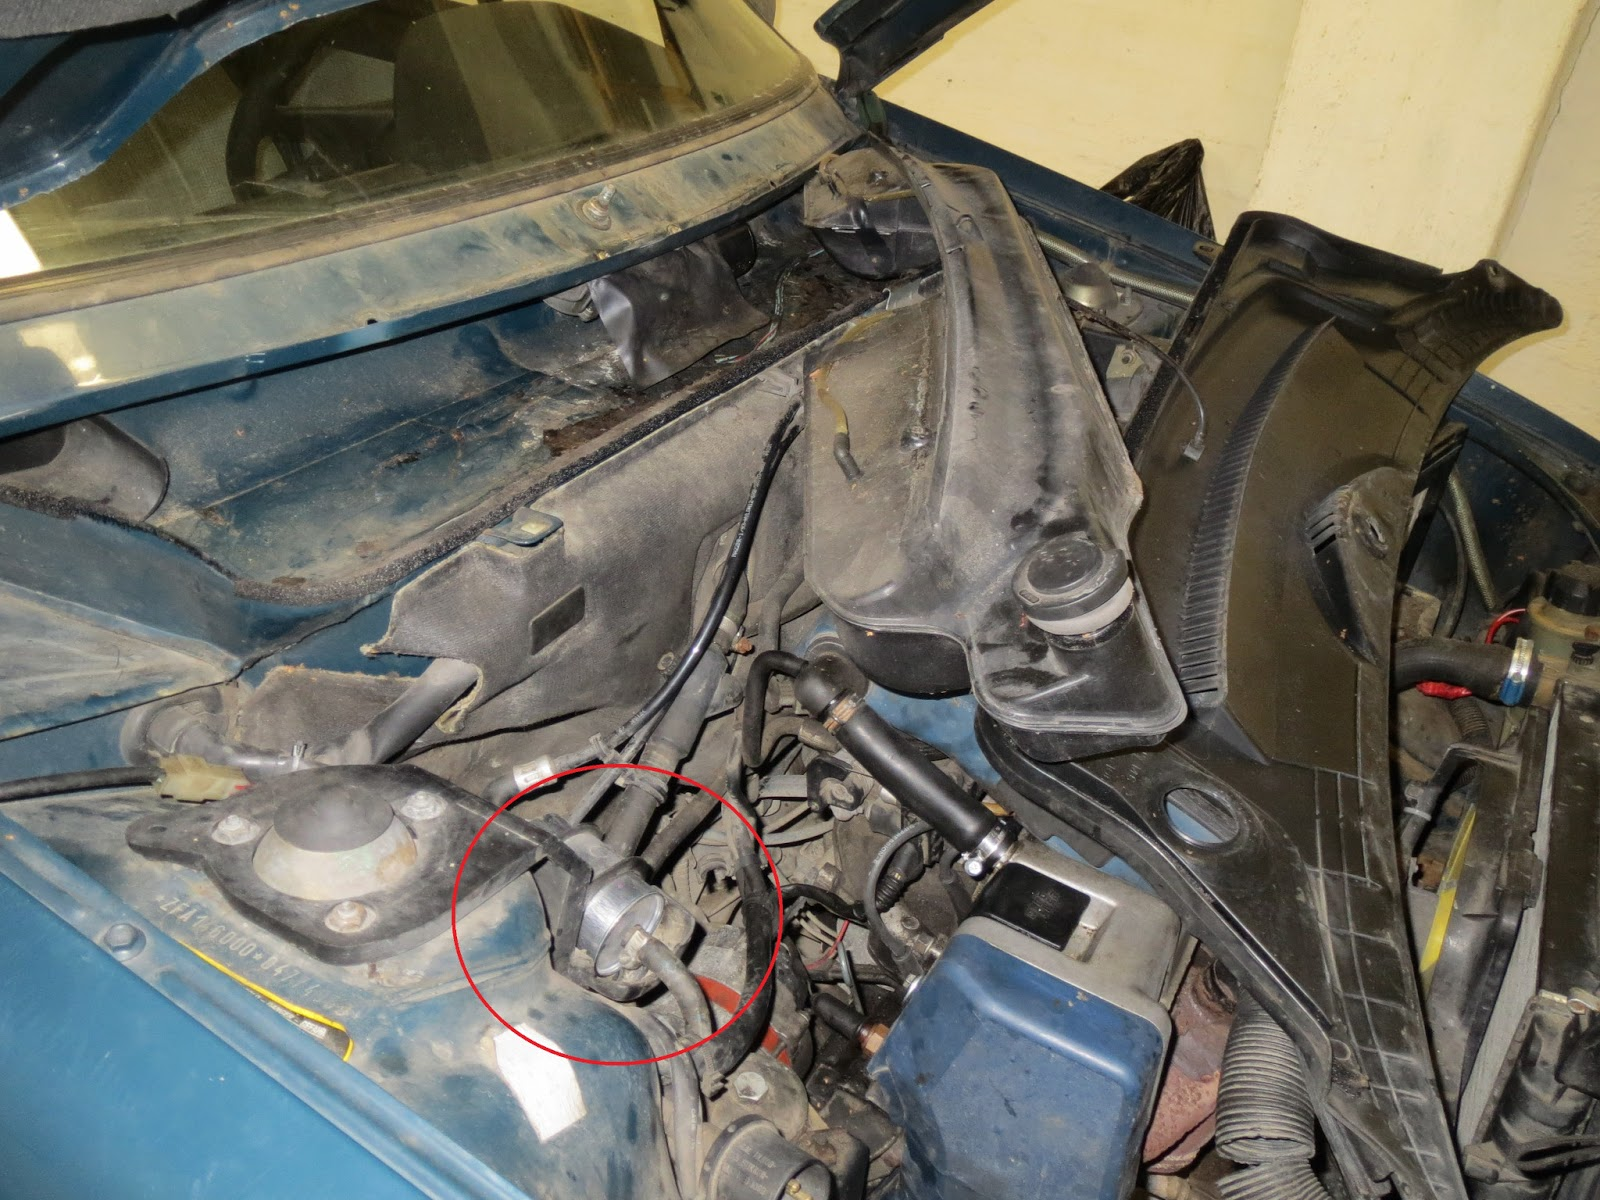 Wiring Diagram For Fiat Uno Wiper Motor Croma Experience Fuel Filter And Other Rh Fiatunoexperience Blogspot Com Schematic Windshield